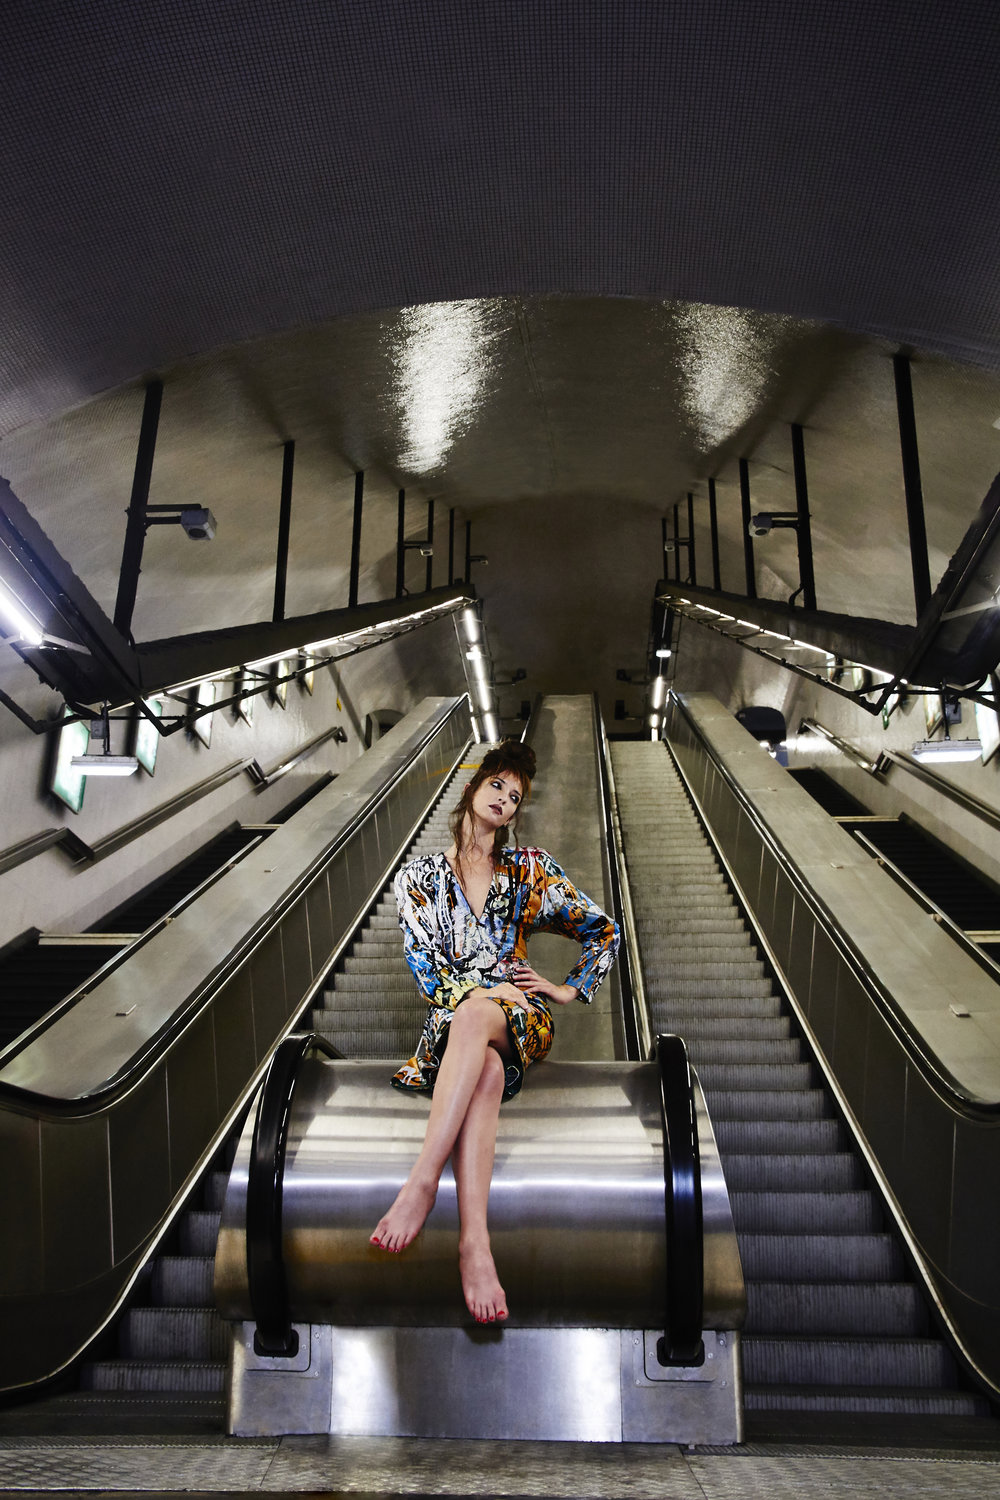 IMG_3731 CHRIISTIAN MAMOUN162016_Paris_MetroShoot copie.jpg